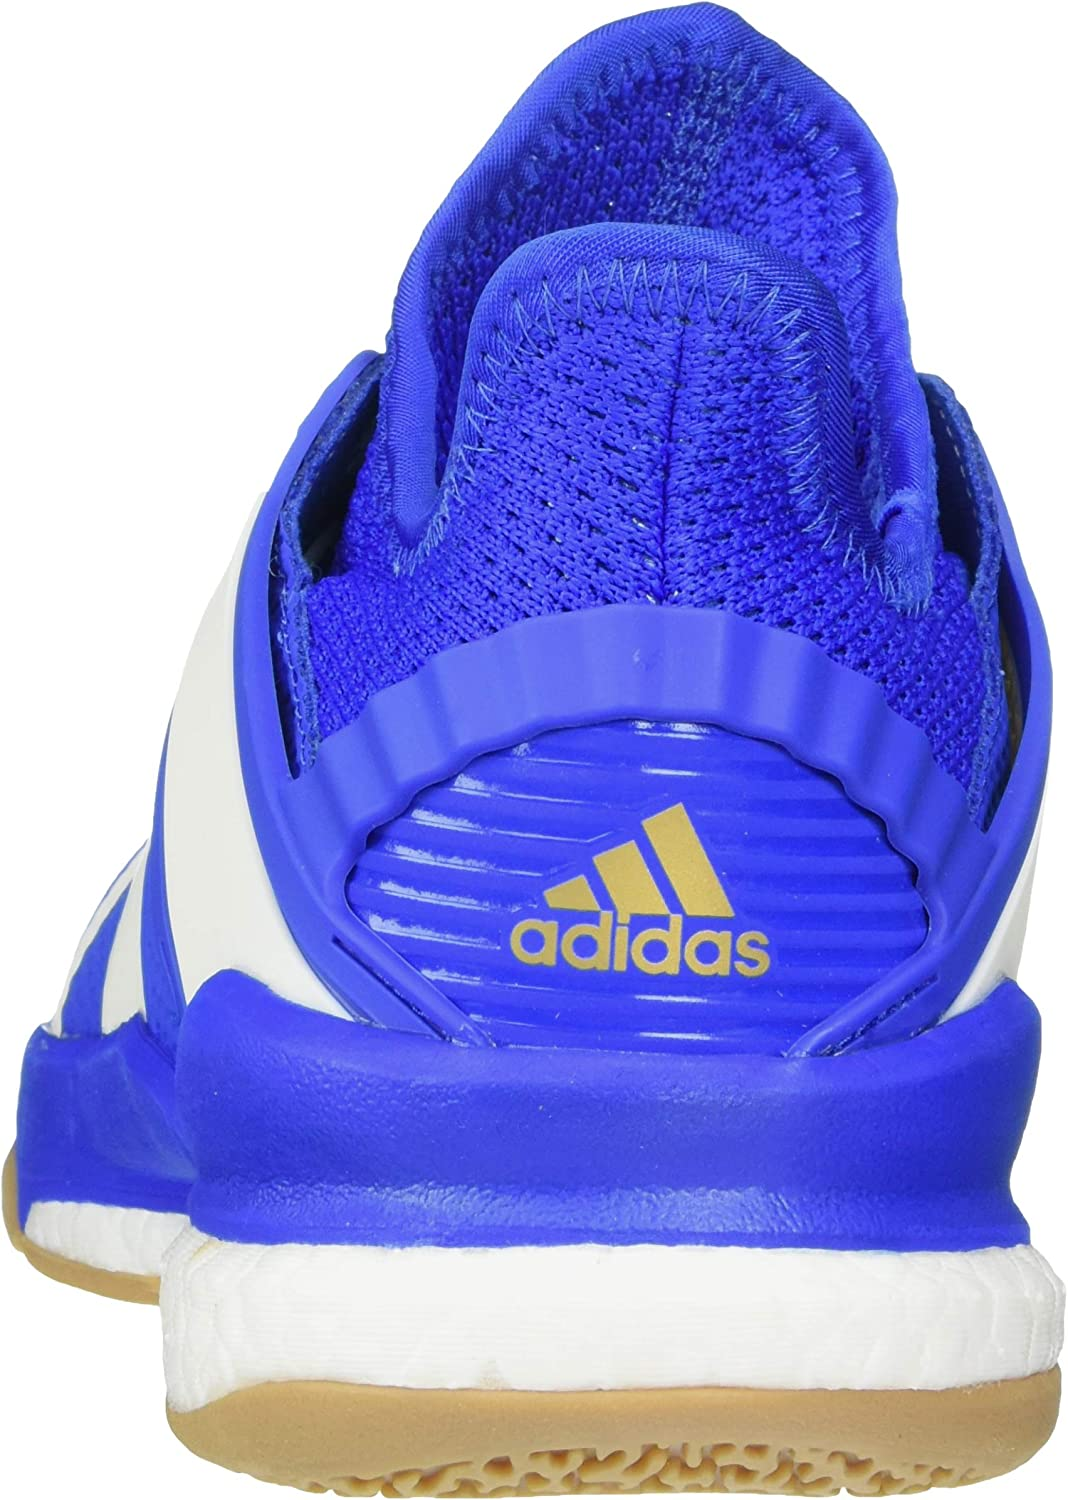 adidas Stabil X, Stable X Homme: : Chaussures et Sacs